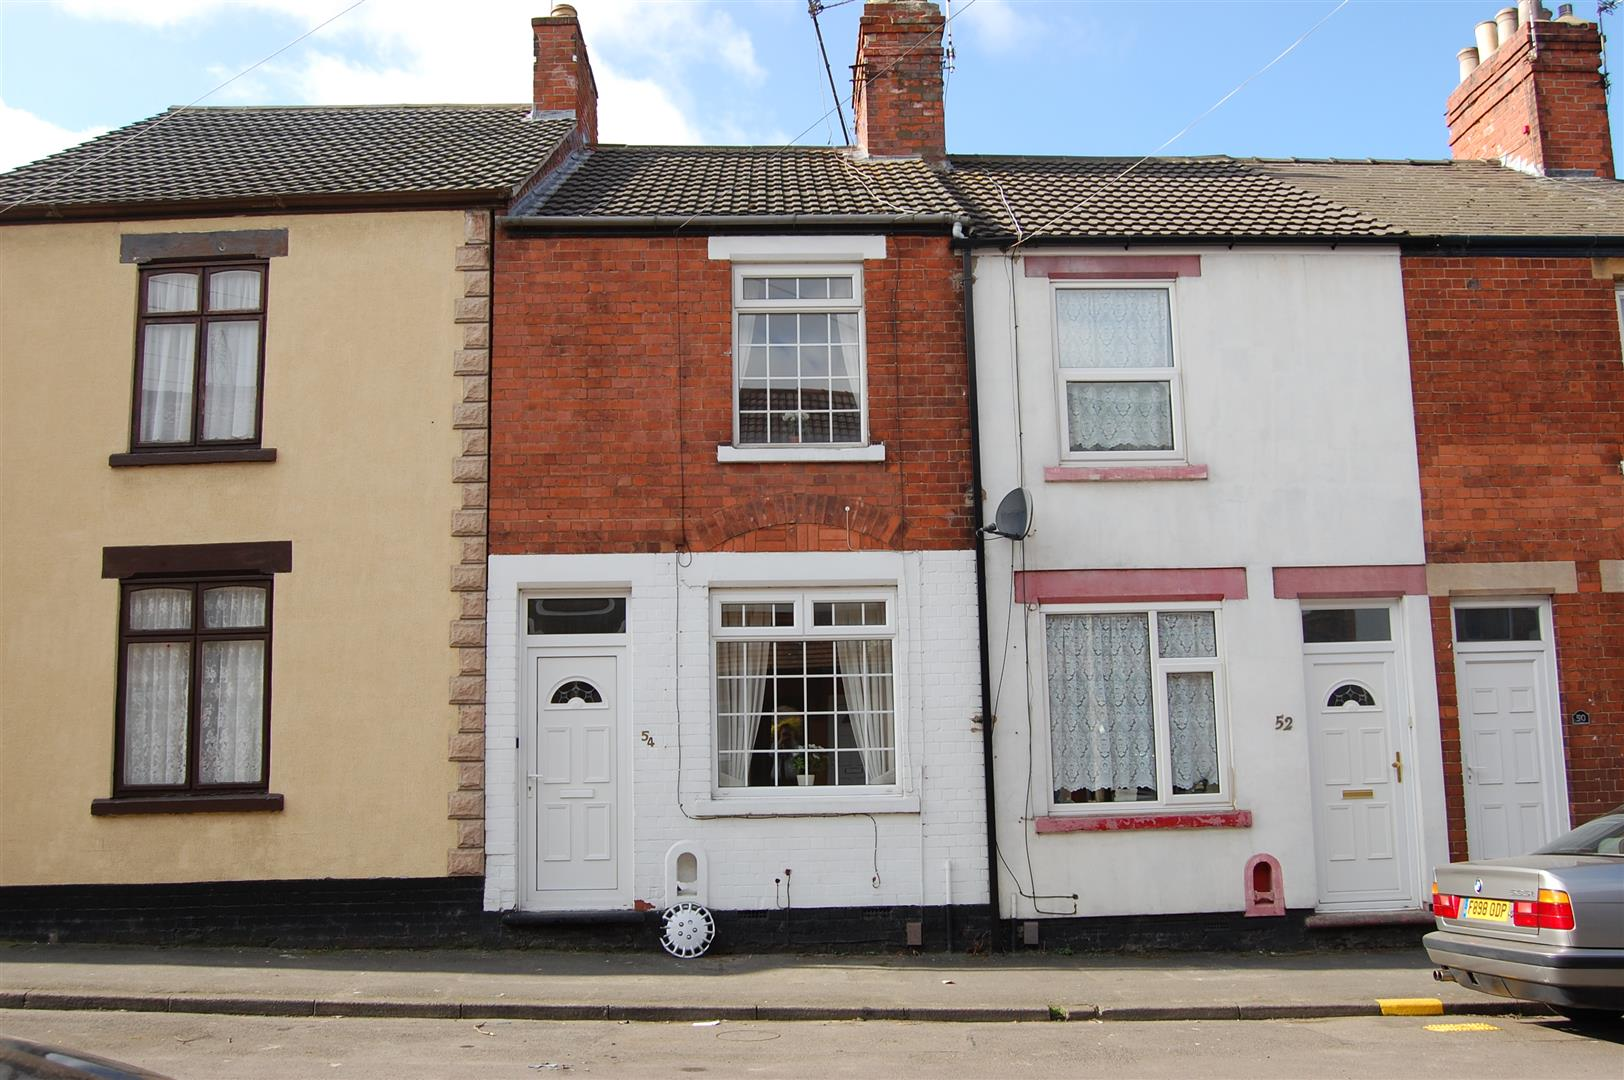 2 bedroom property in Grantham